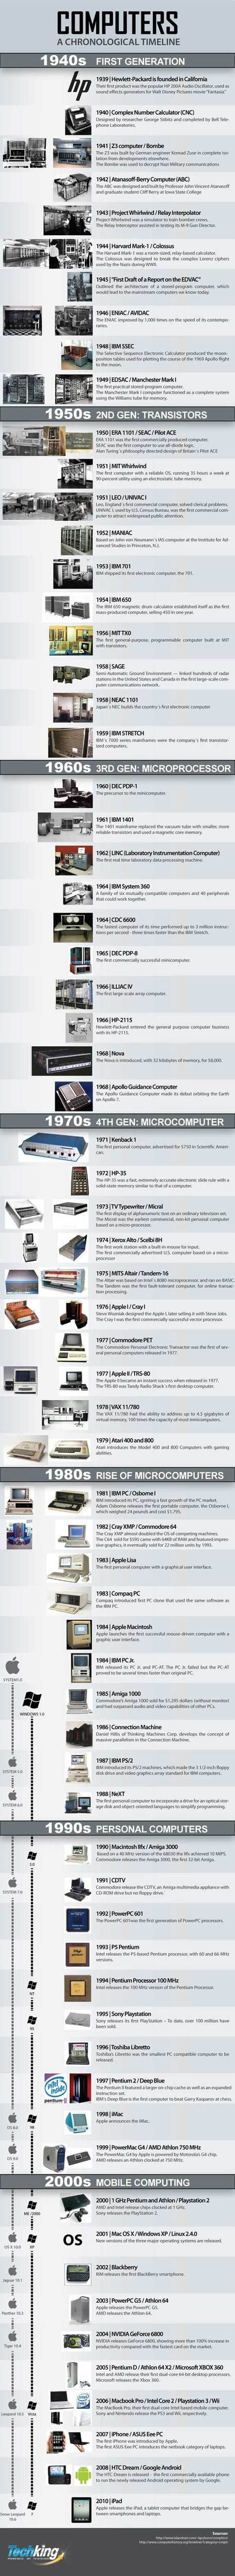 comprehensive-history-of-computers-infographic